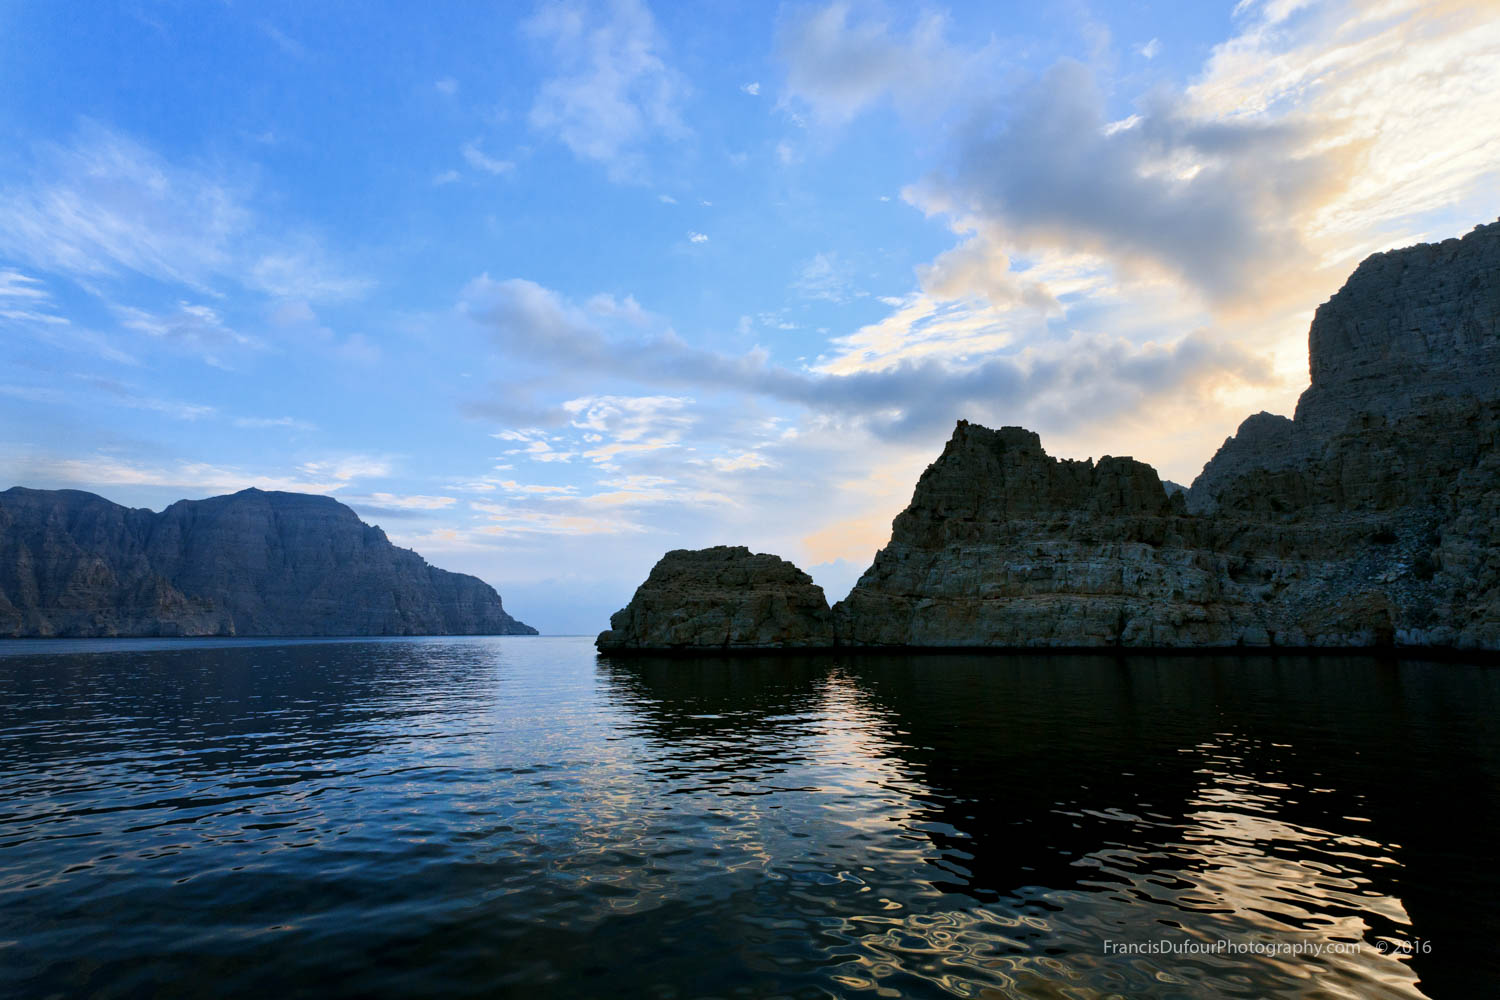 Sunrise in Sheesha Bay (Musandam, Oman)